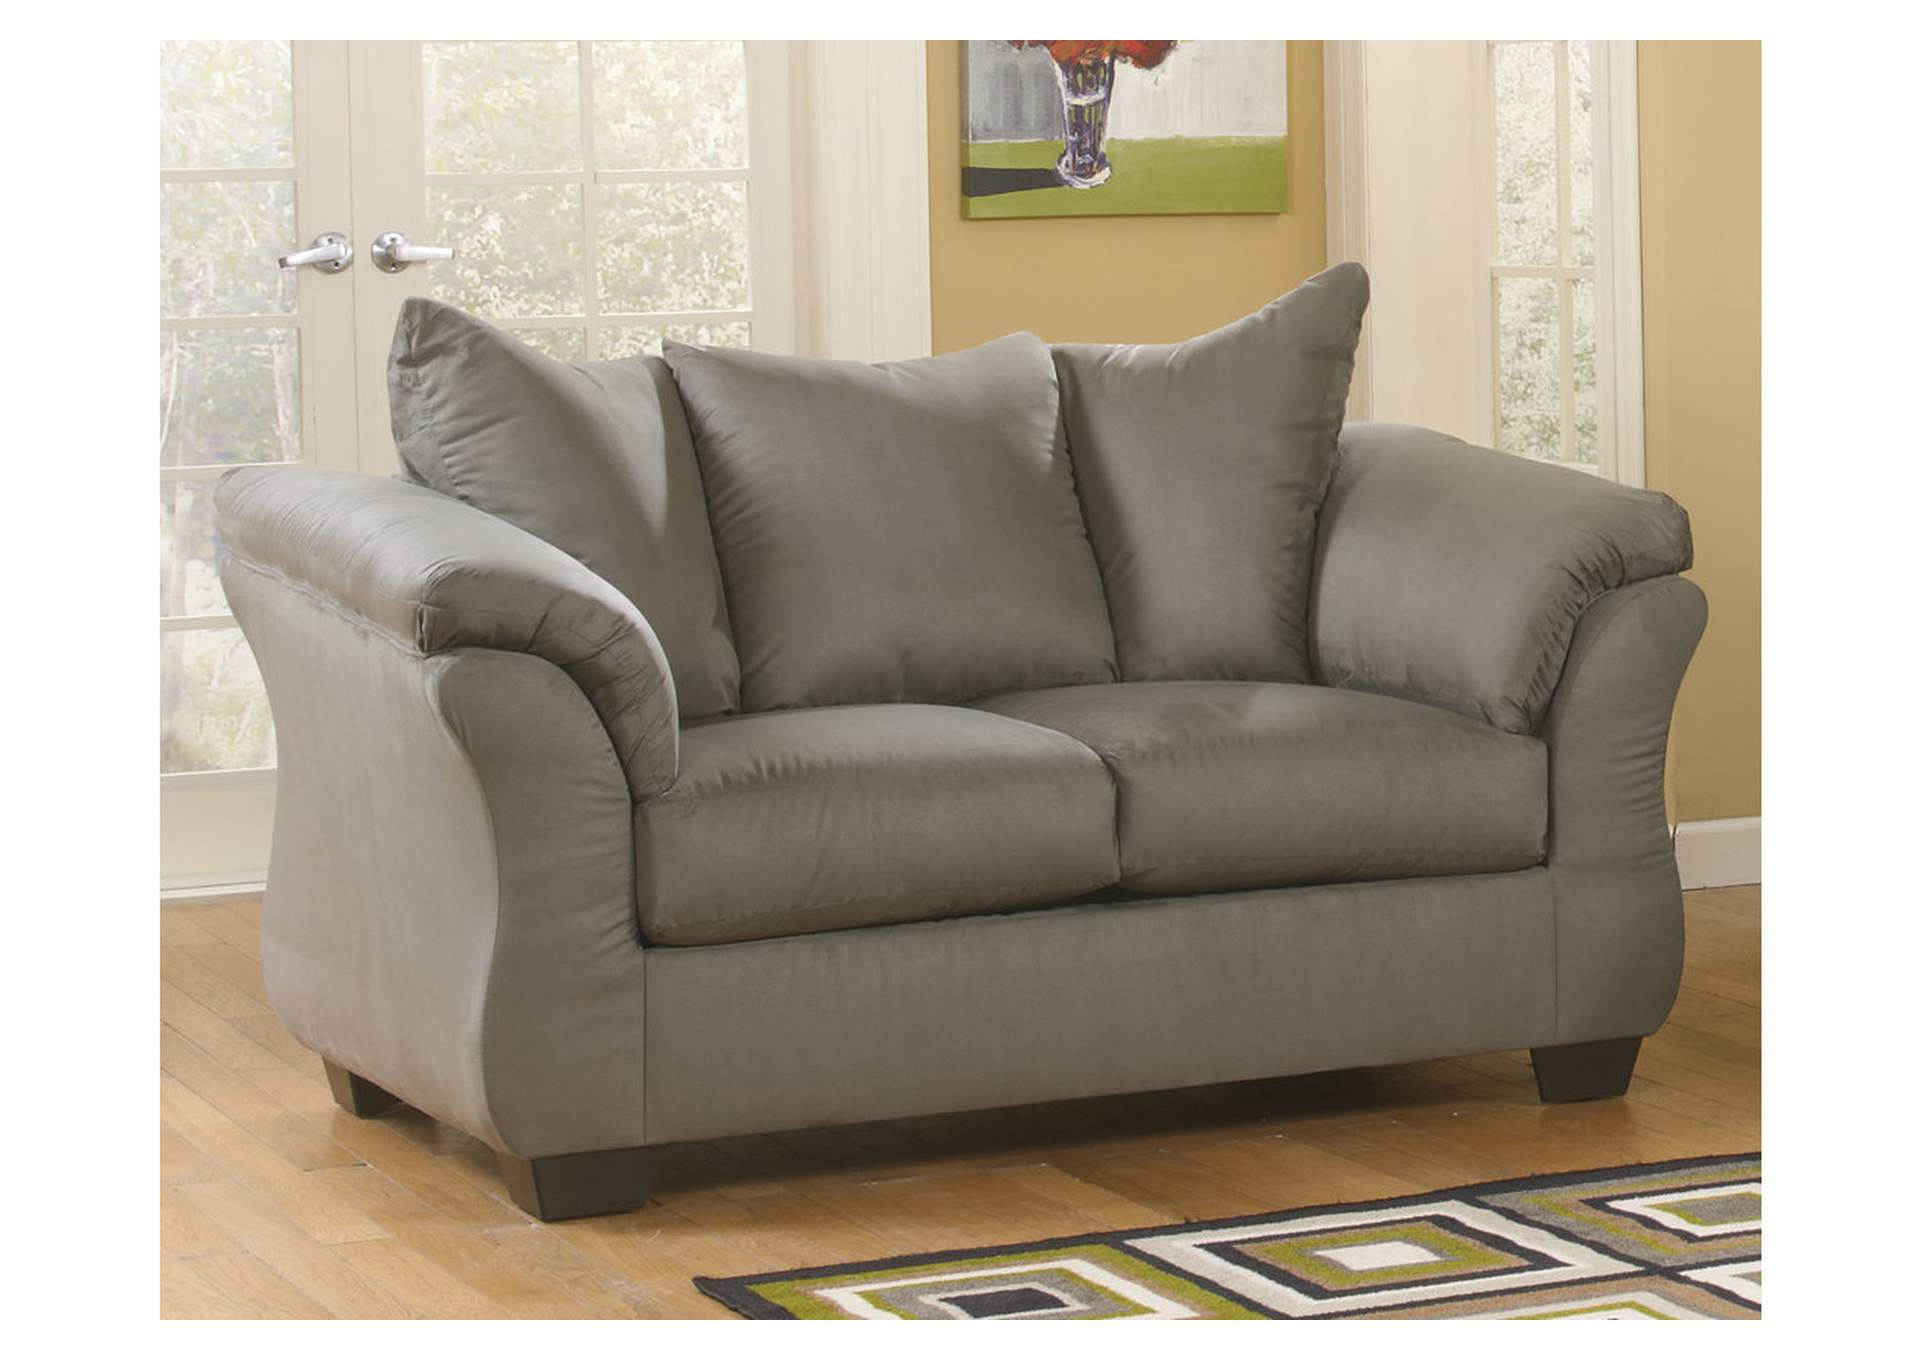 Darcy Cobblestone Loveseat,Signature Design By Ashley